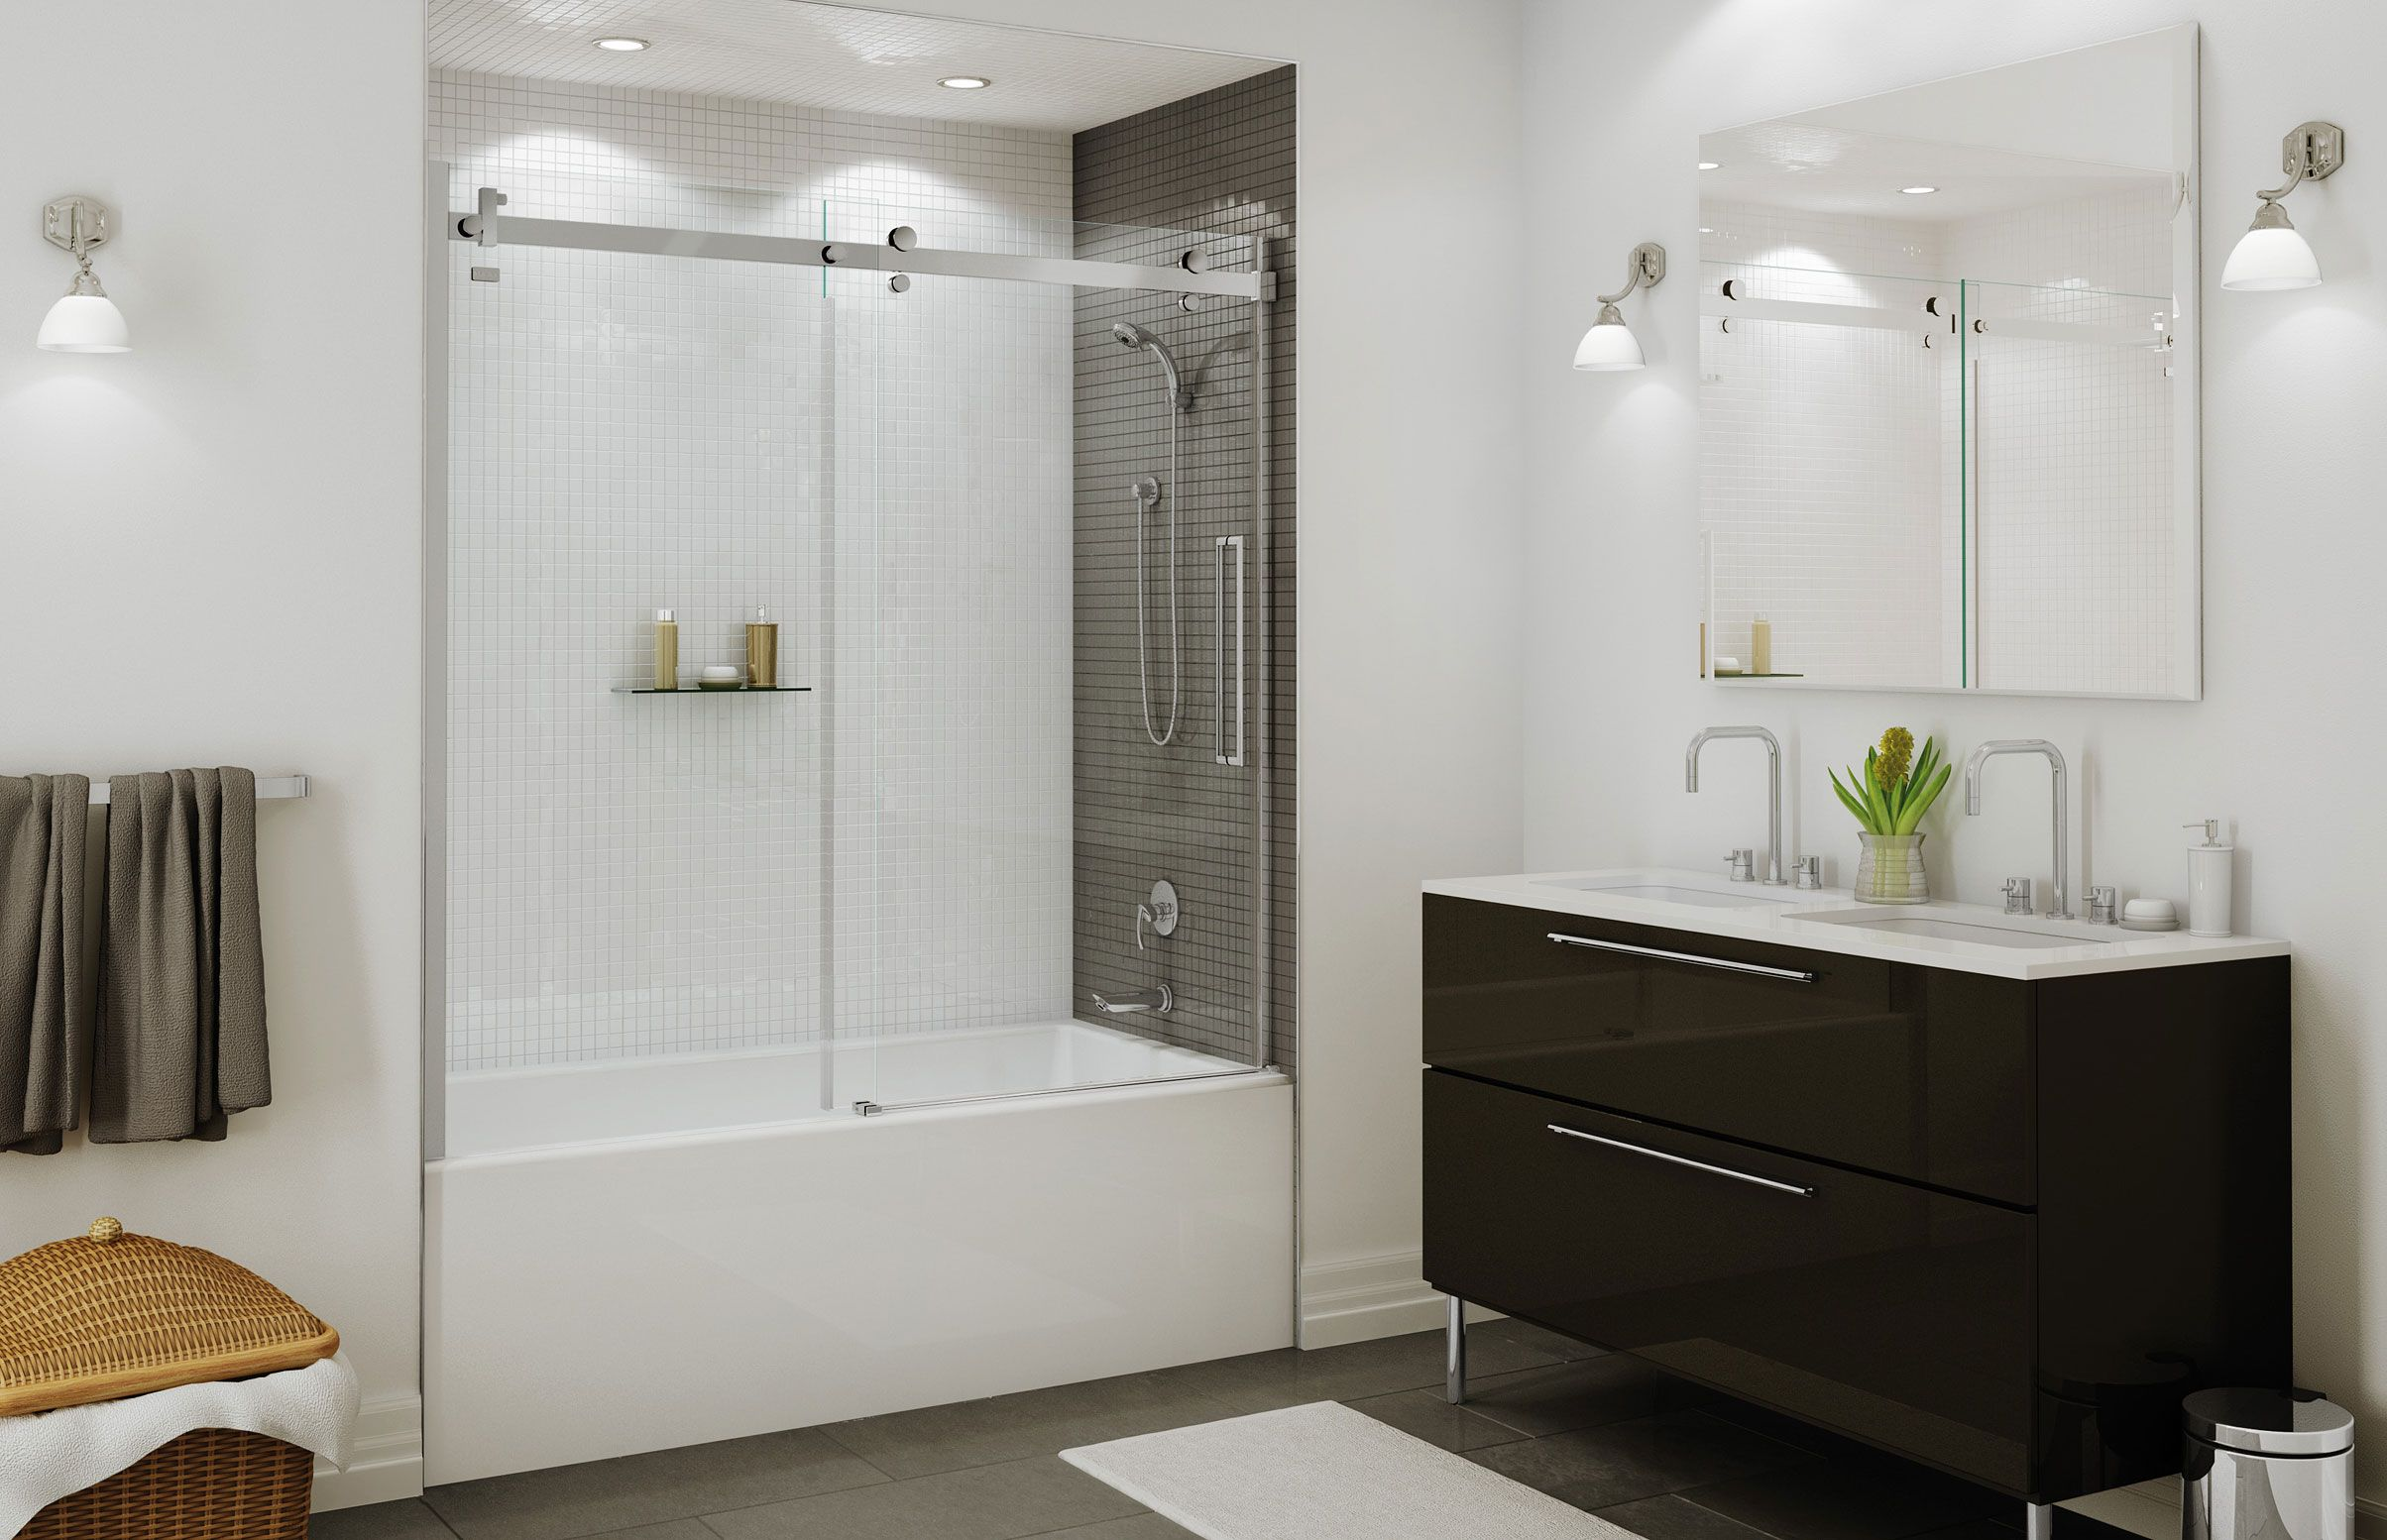 Halo sliding tub door - MAAX For second floor tub/shower. Door ...